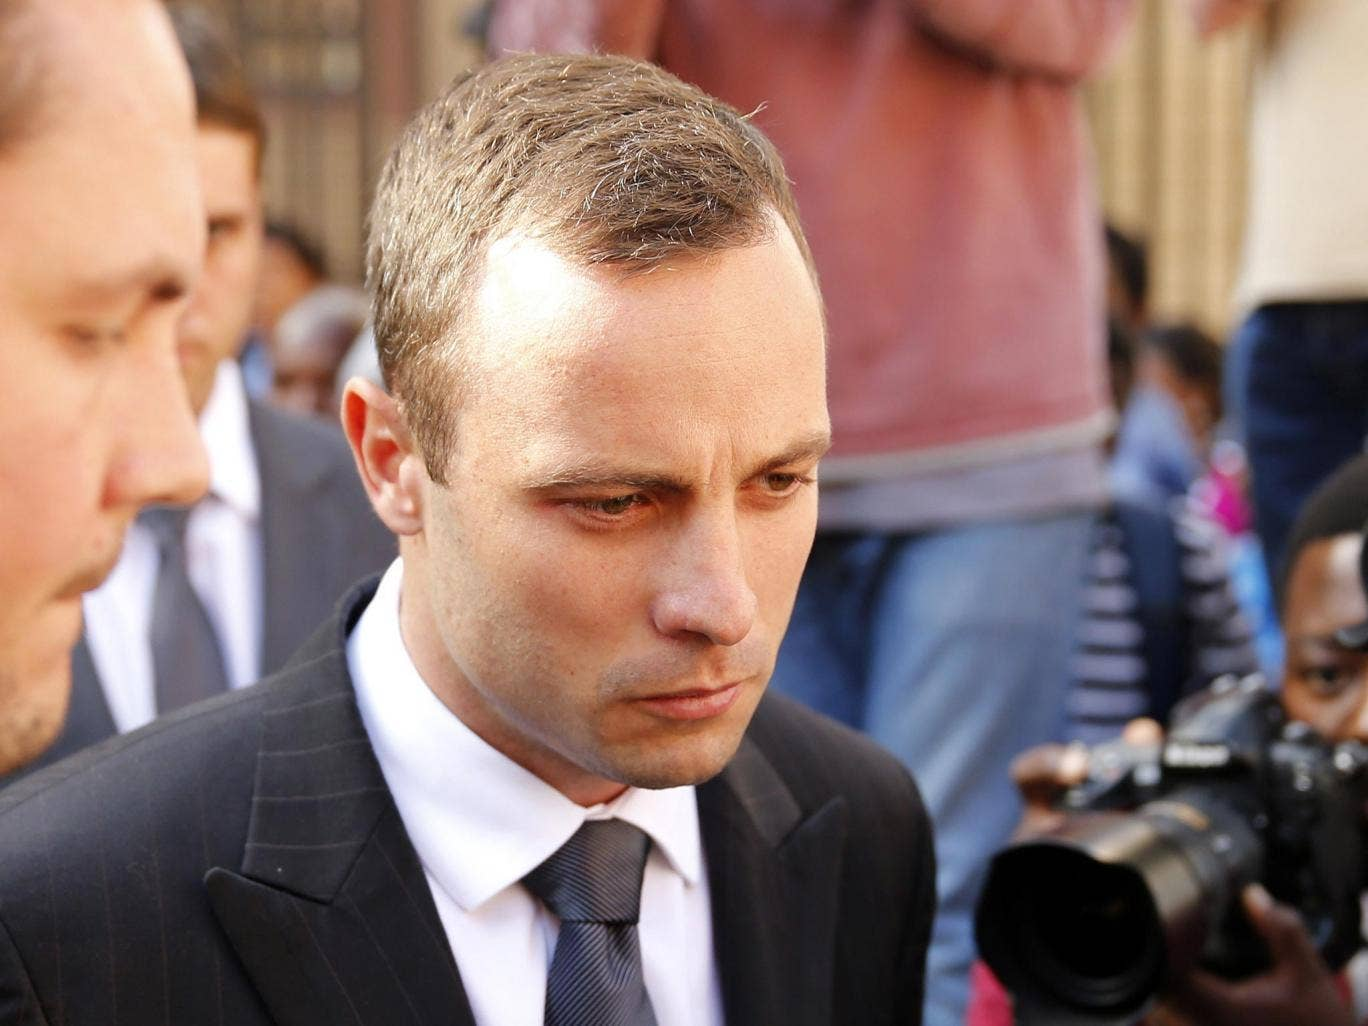 Oscar Pistorius at the end of his trial at the North Gauteng High Court in Pretoria